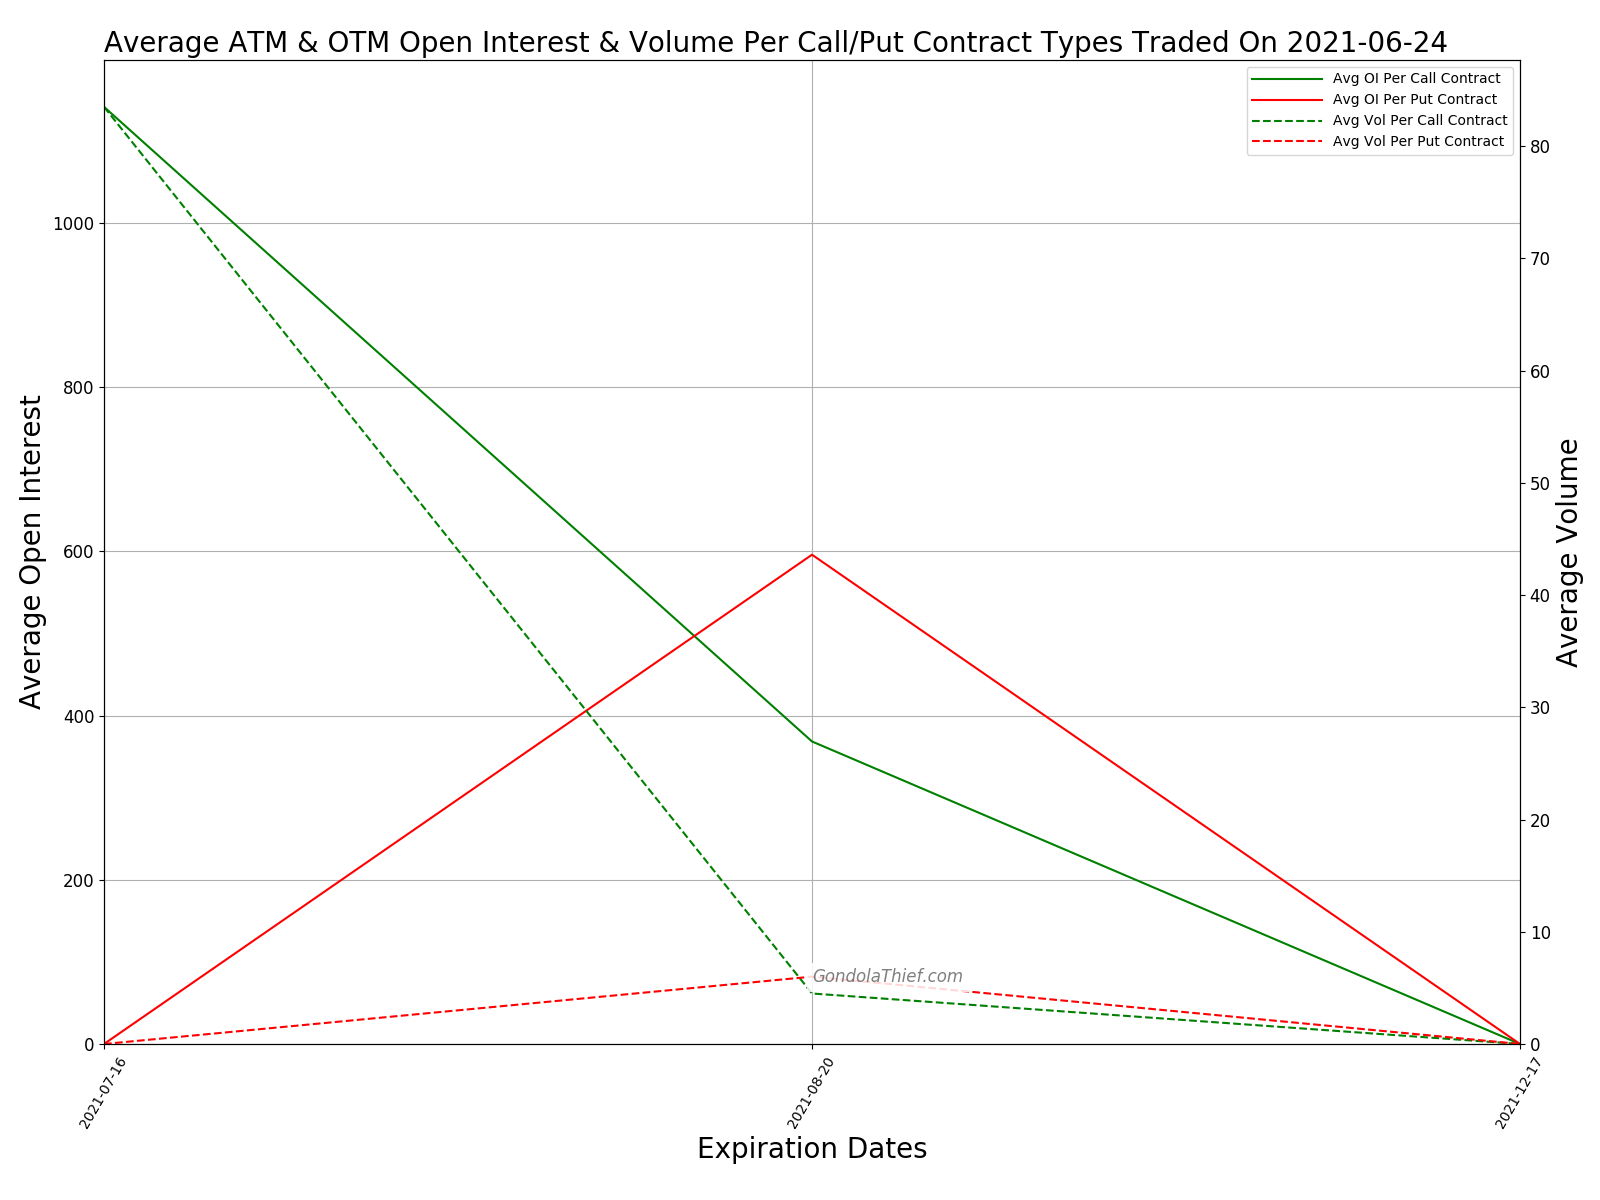 Graph of Average Open Interest & Volume Per Call/Put Contract